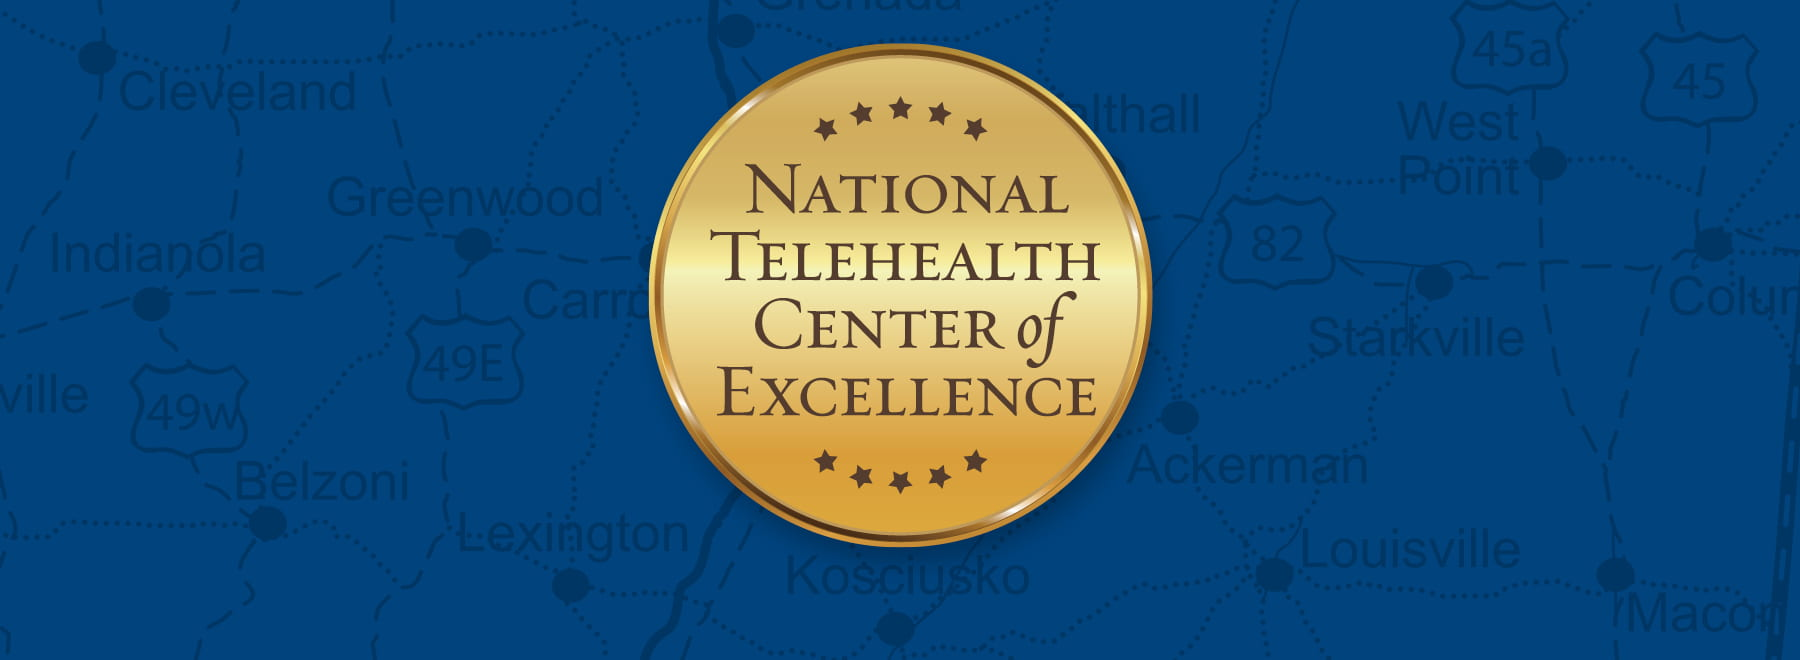 UMMC Telehealth earns a national designation.